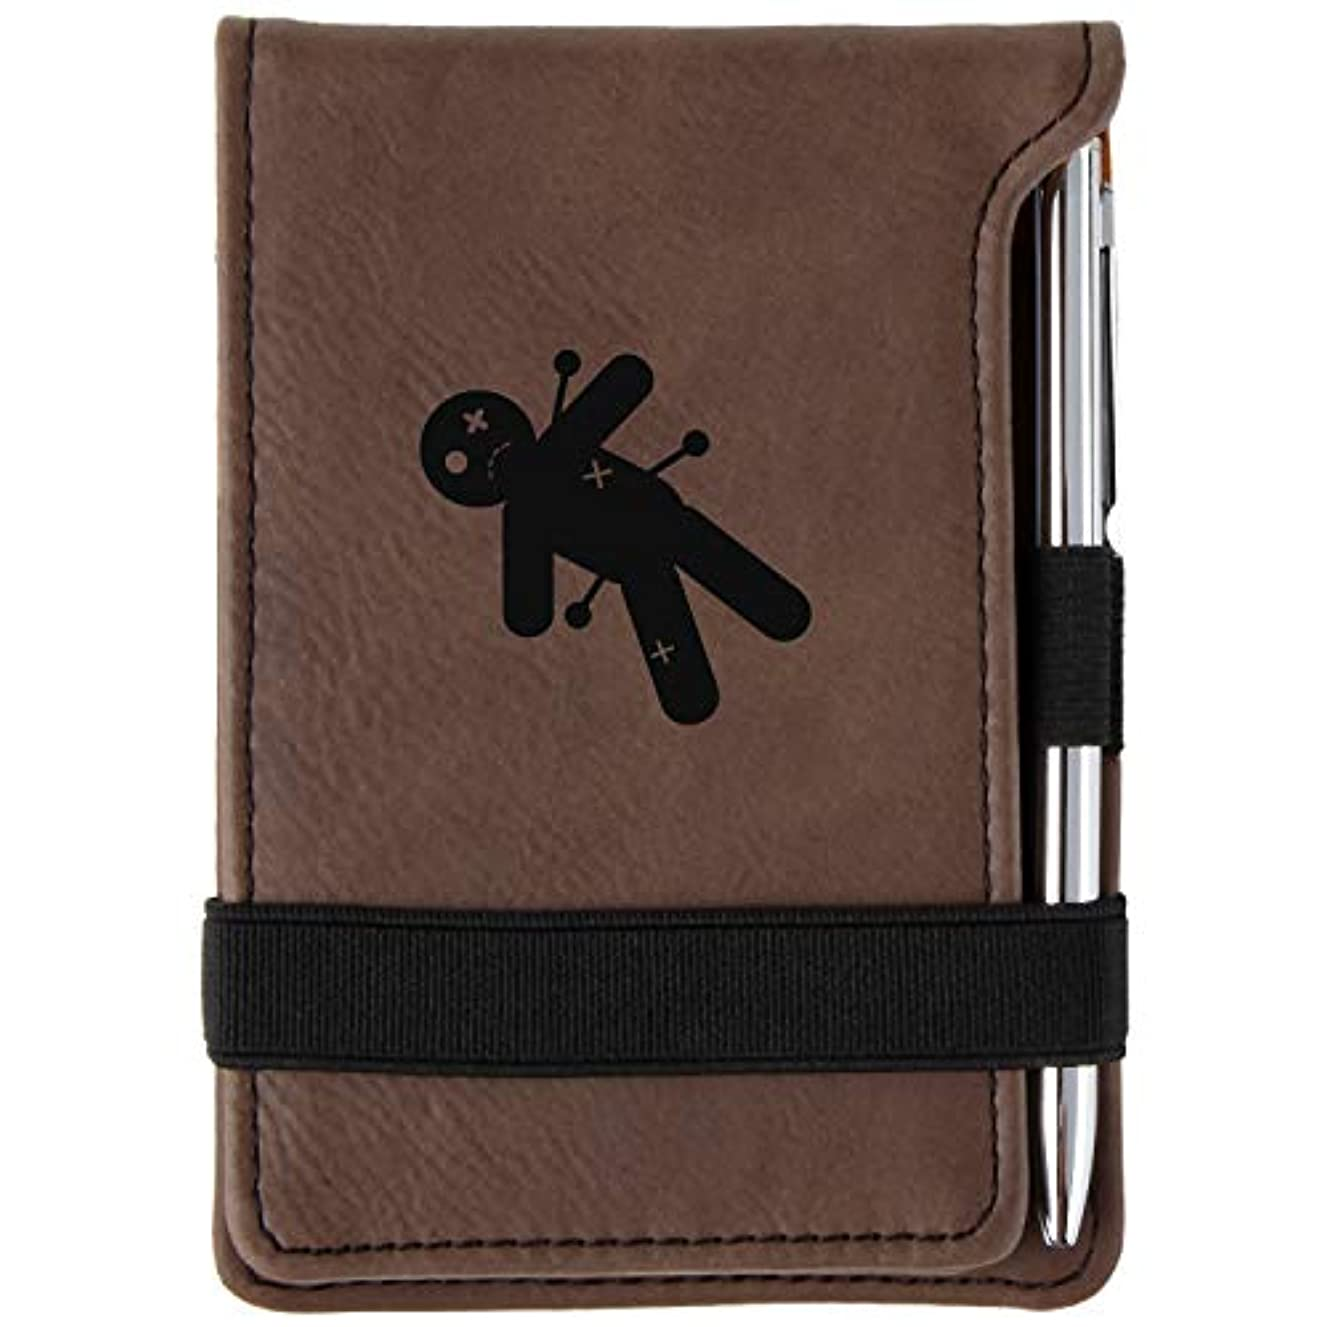 Voodoo Engraved Leather Personalized Mini Notepad With Pen